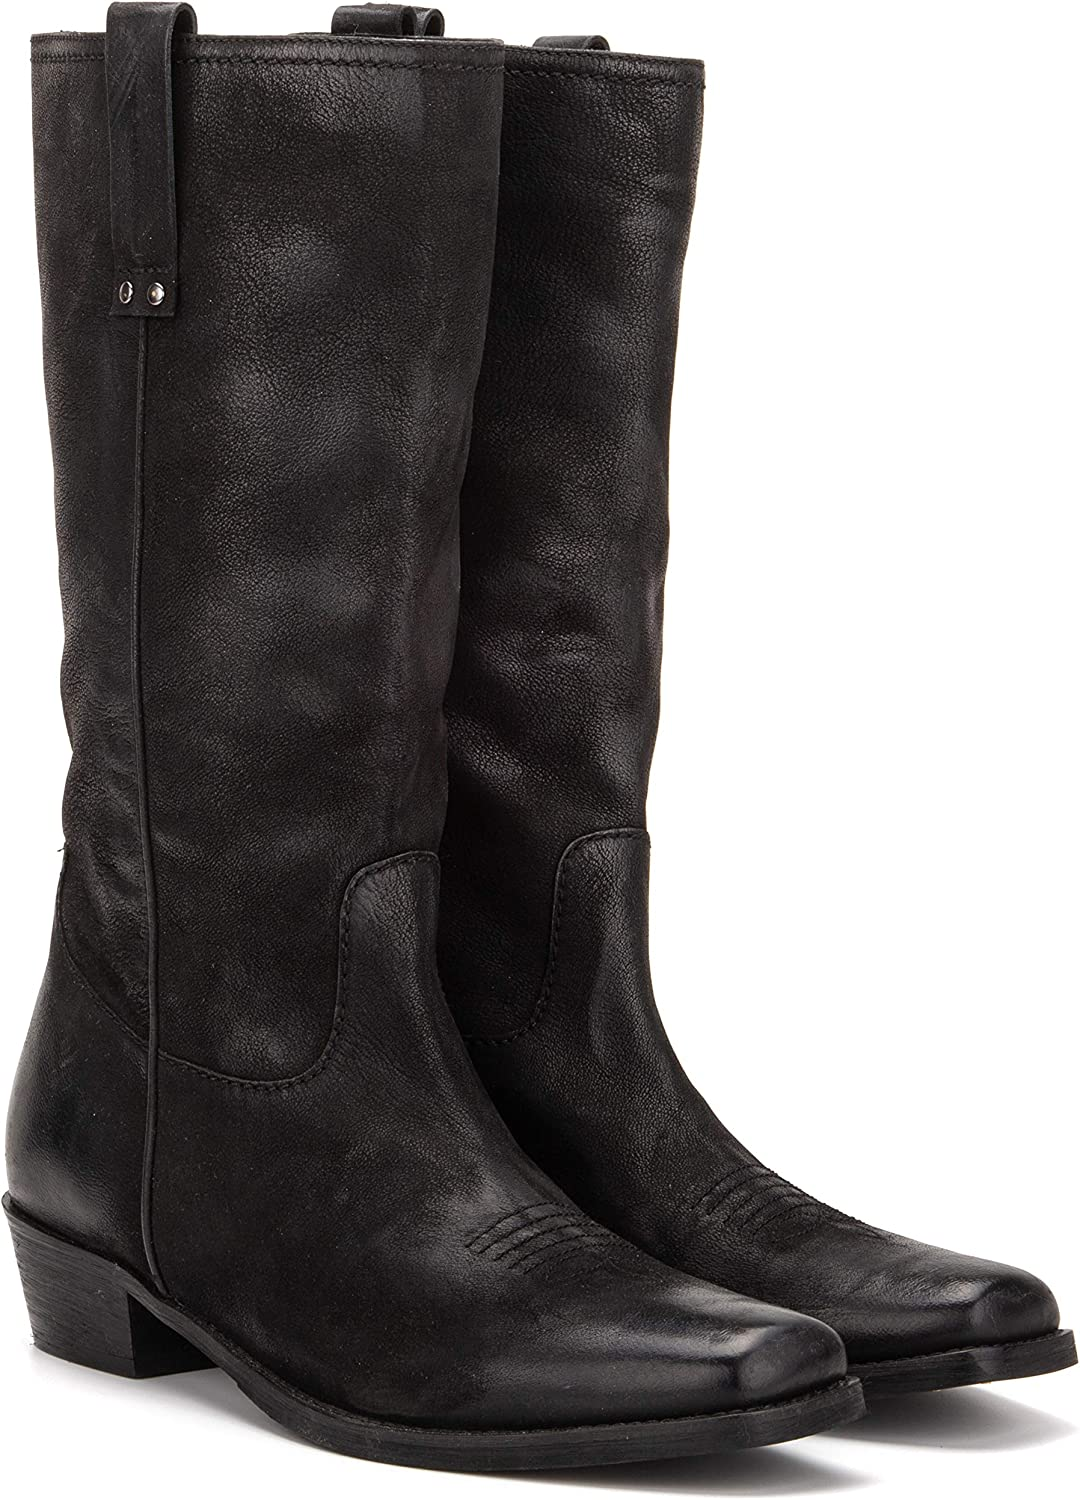 SEAL limited product Vintage Foundry Co. Latest item Aliza Women's We Hand-crafted Fashion Rugged